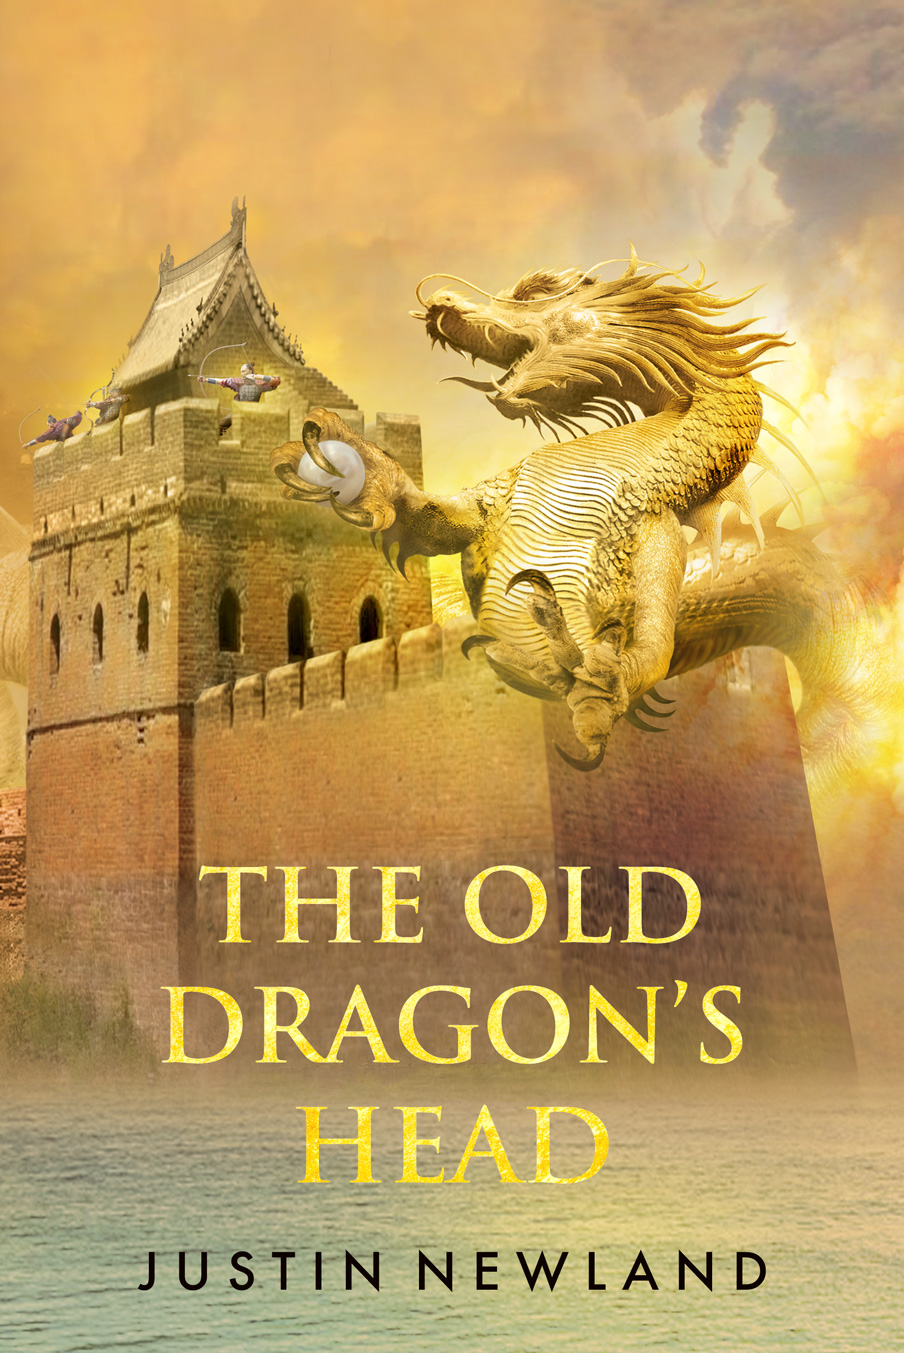 #Release day blitz of The Dragon Head by Justin Newland #Q&A #Excerpt @matadorbooks